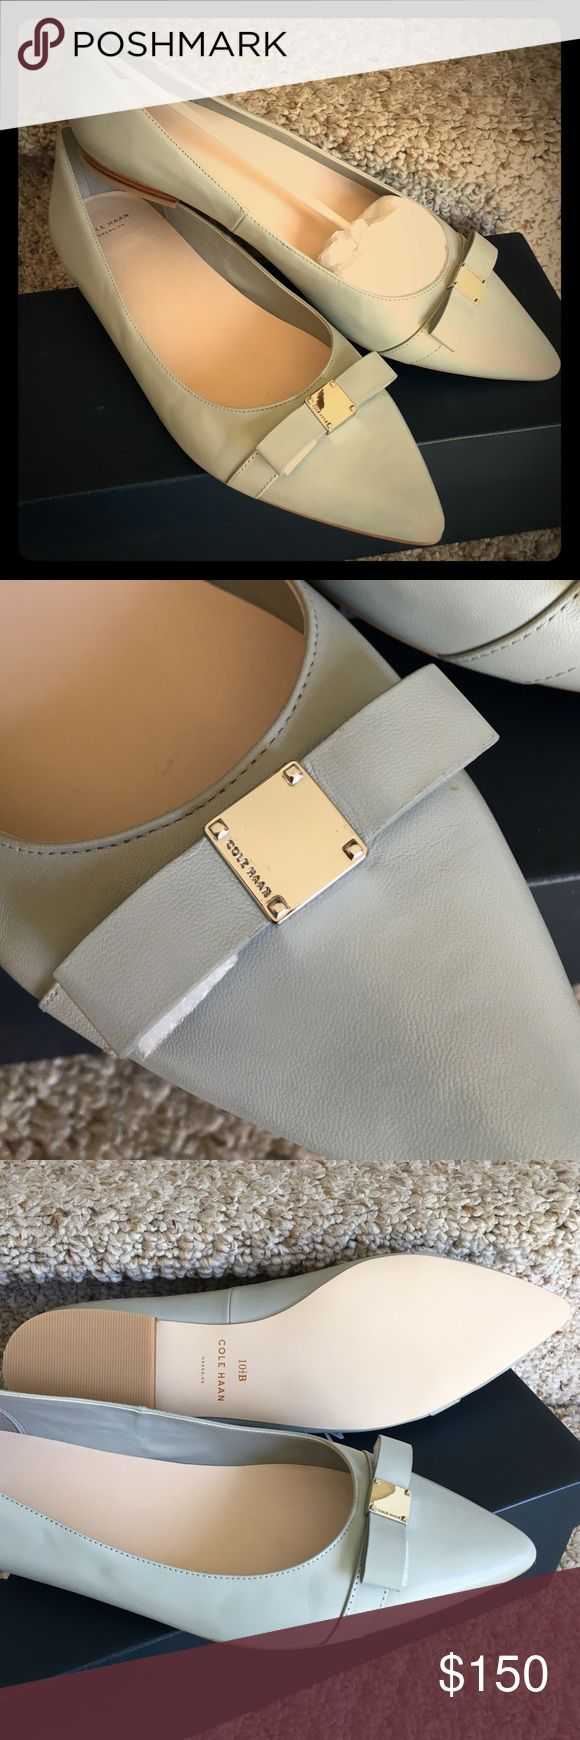 💕Host Pick!💕 NWT! Cole Haan Grey Flats These flats are brand new in box! No scuffs or marks! Cole Haan Shoes Flats & Loafers